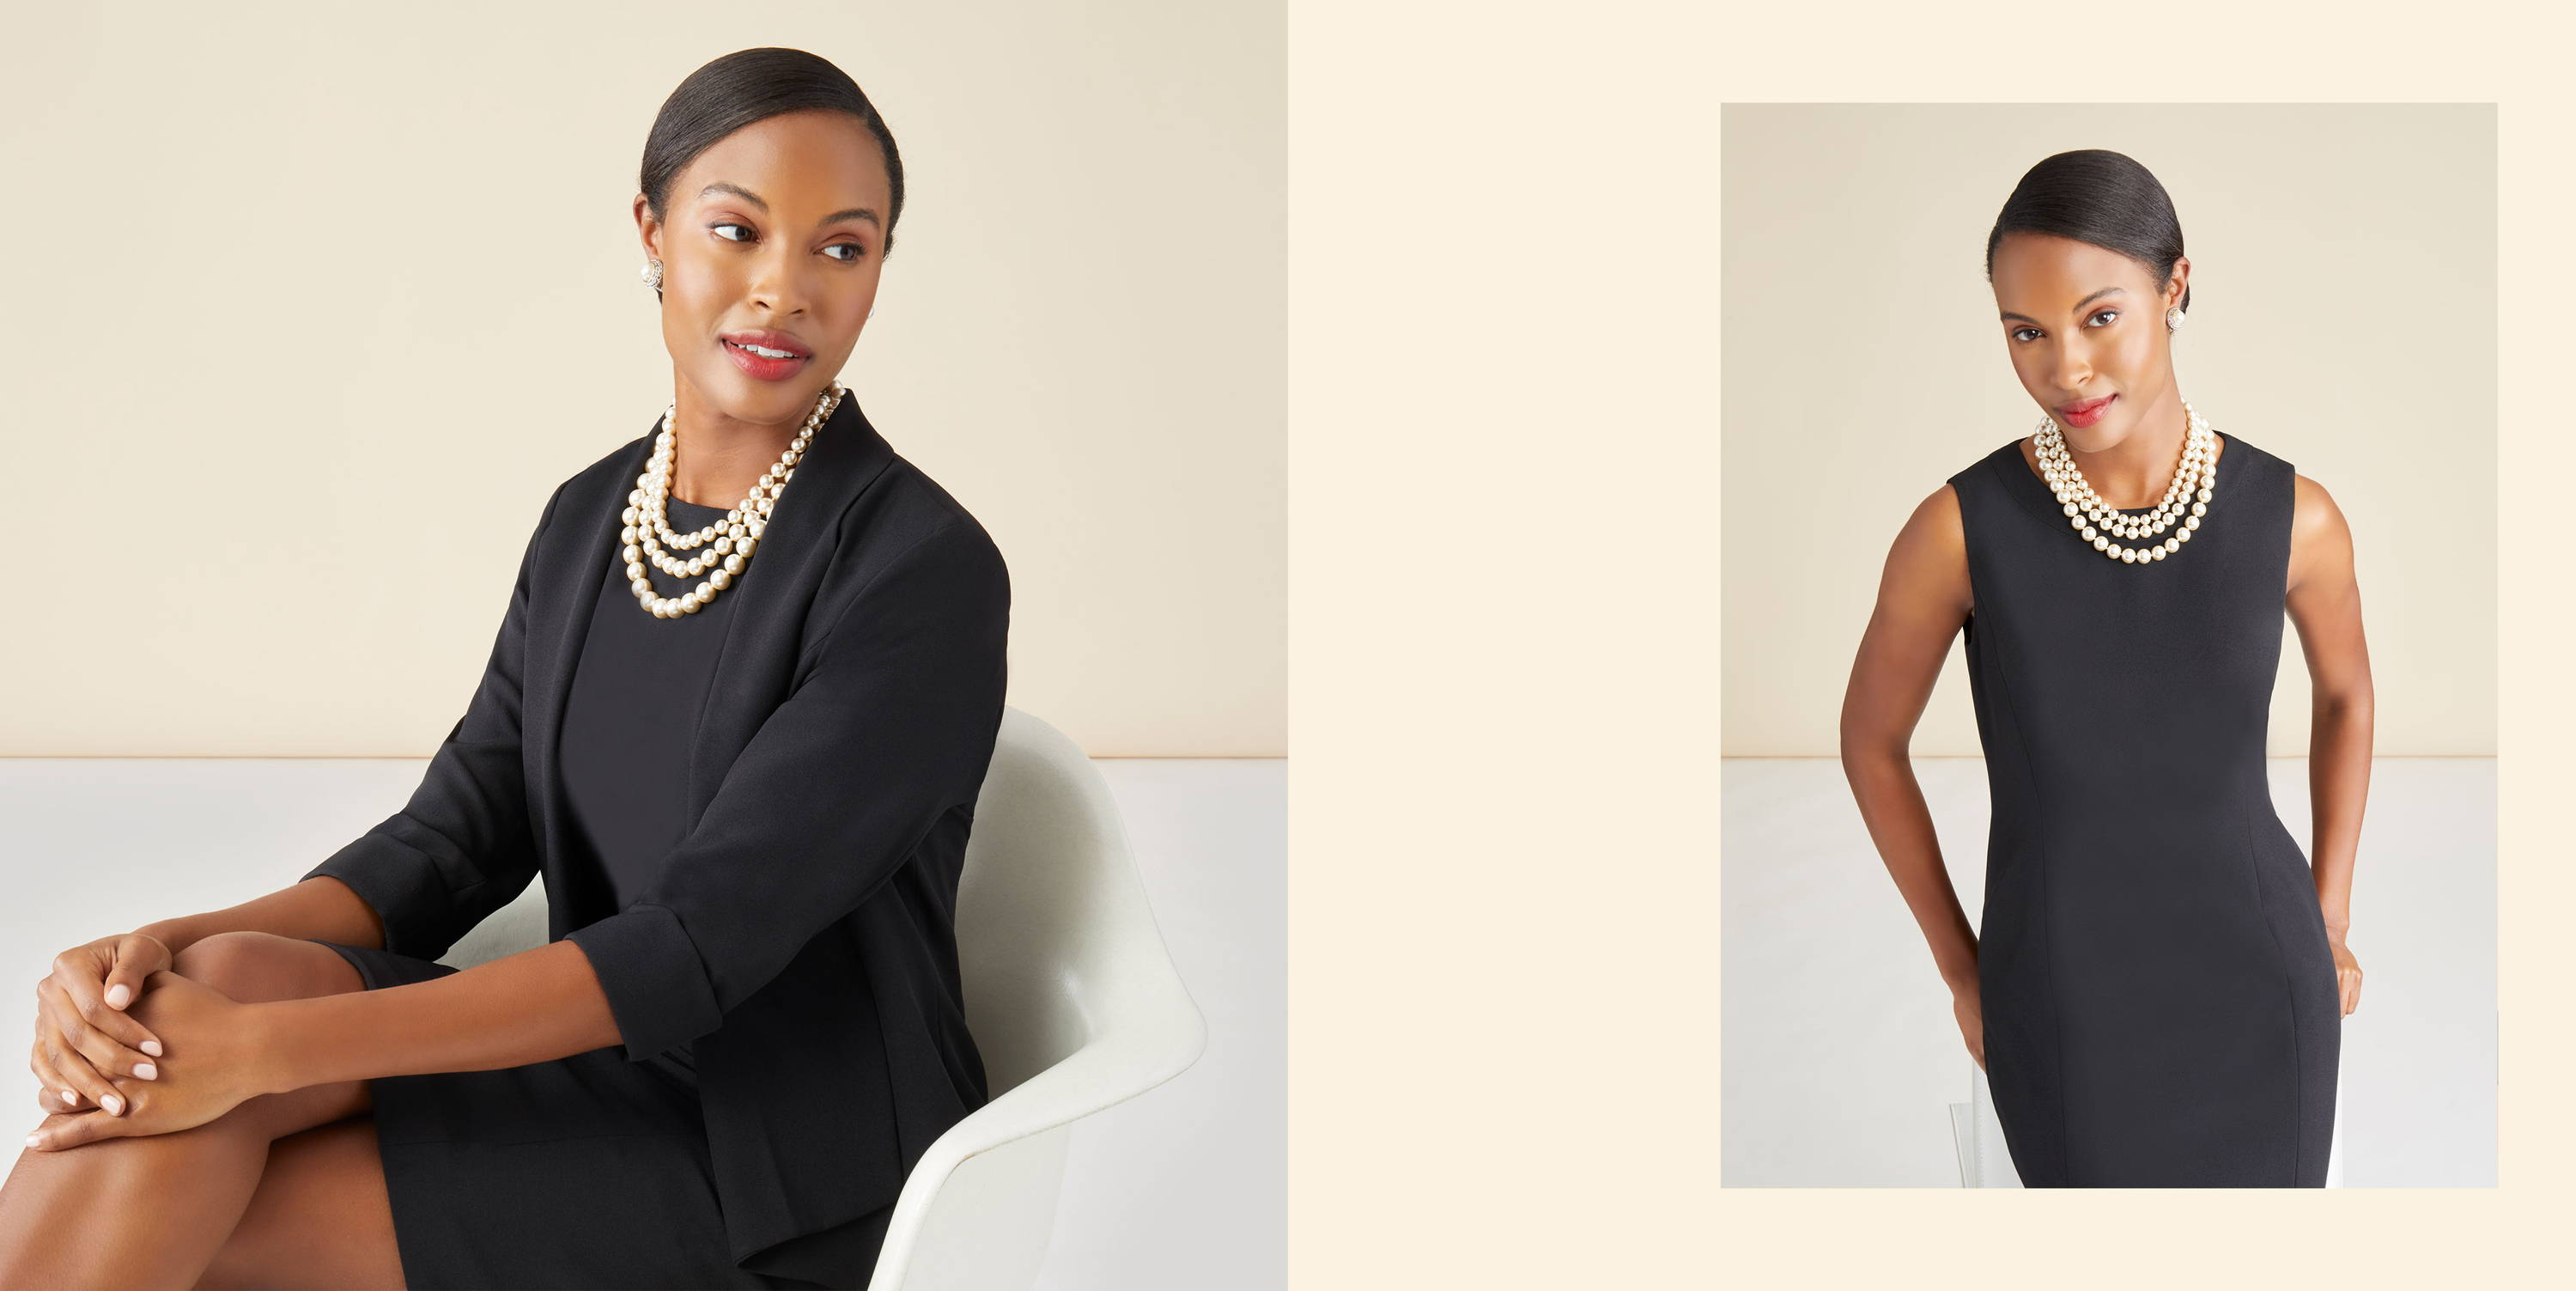 The Perfect Suit — Tailored Suiting for Women | Kasper